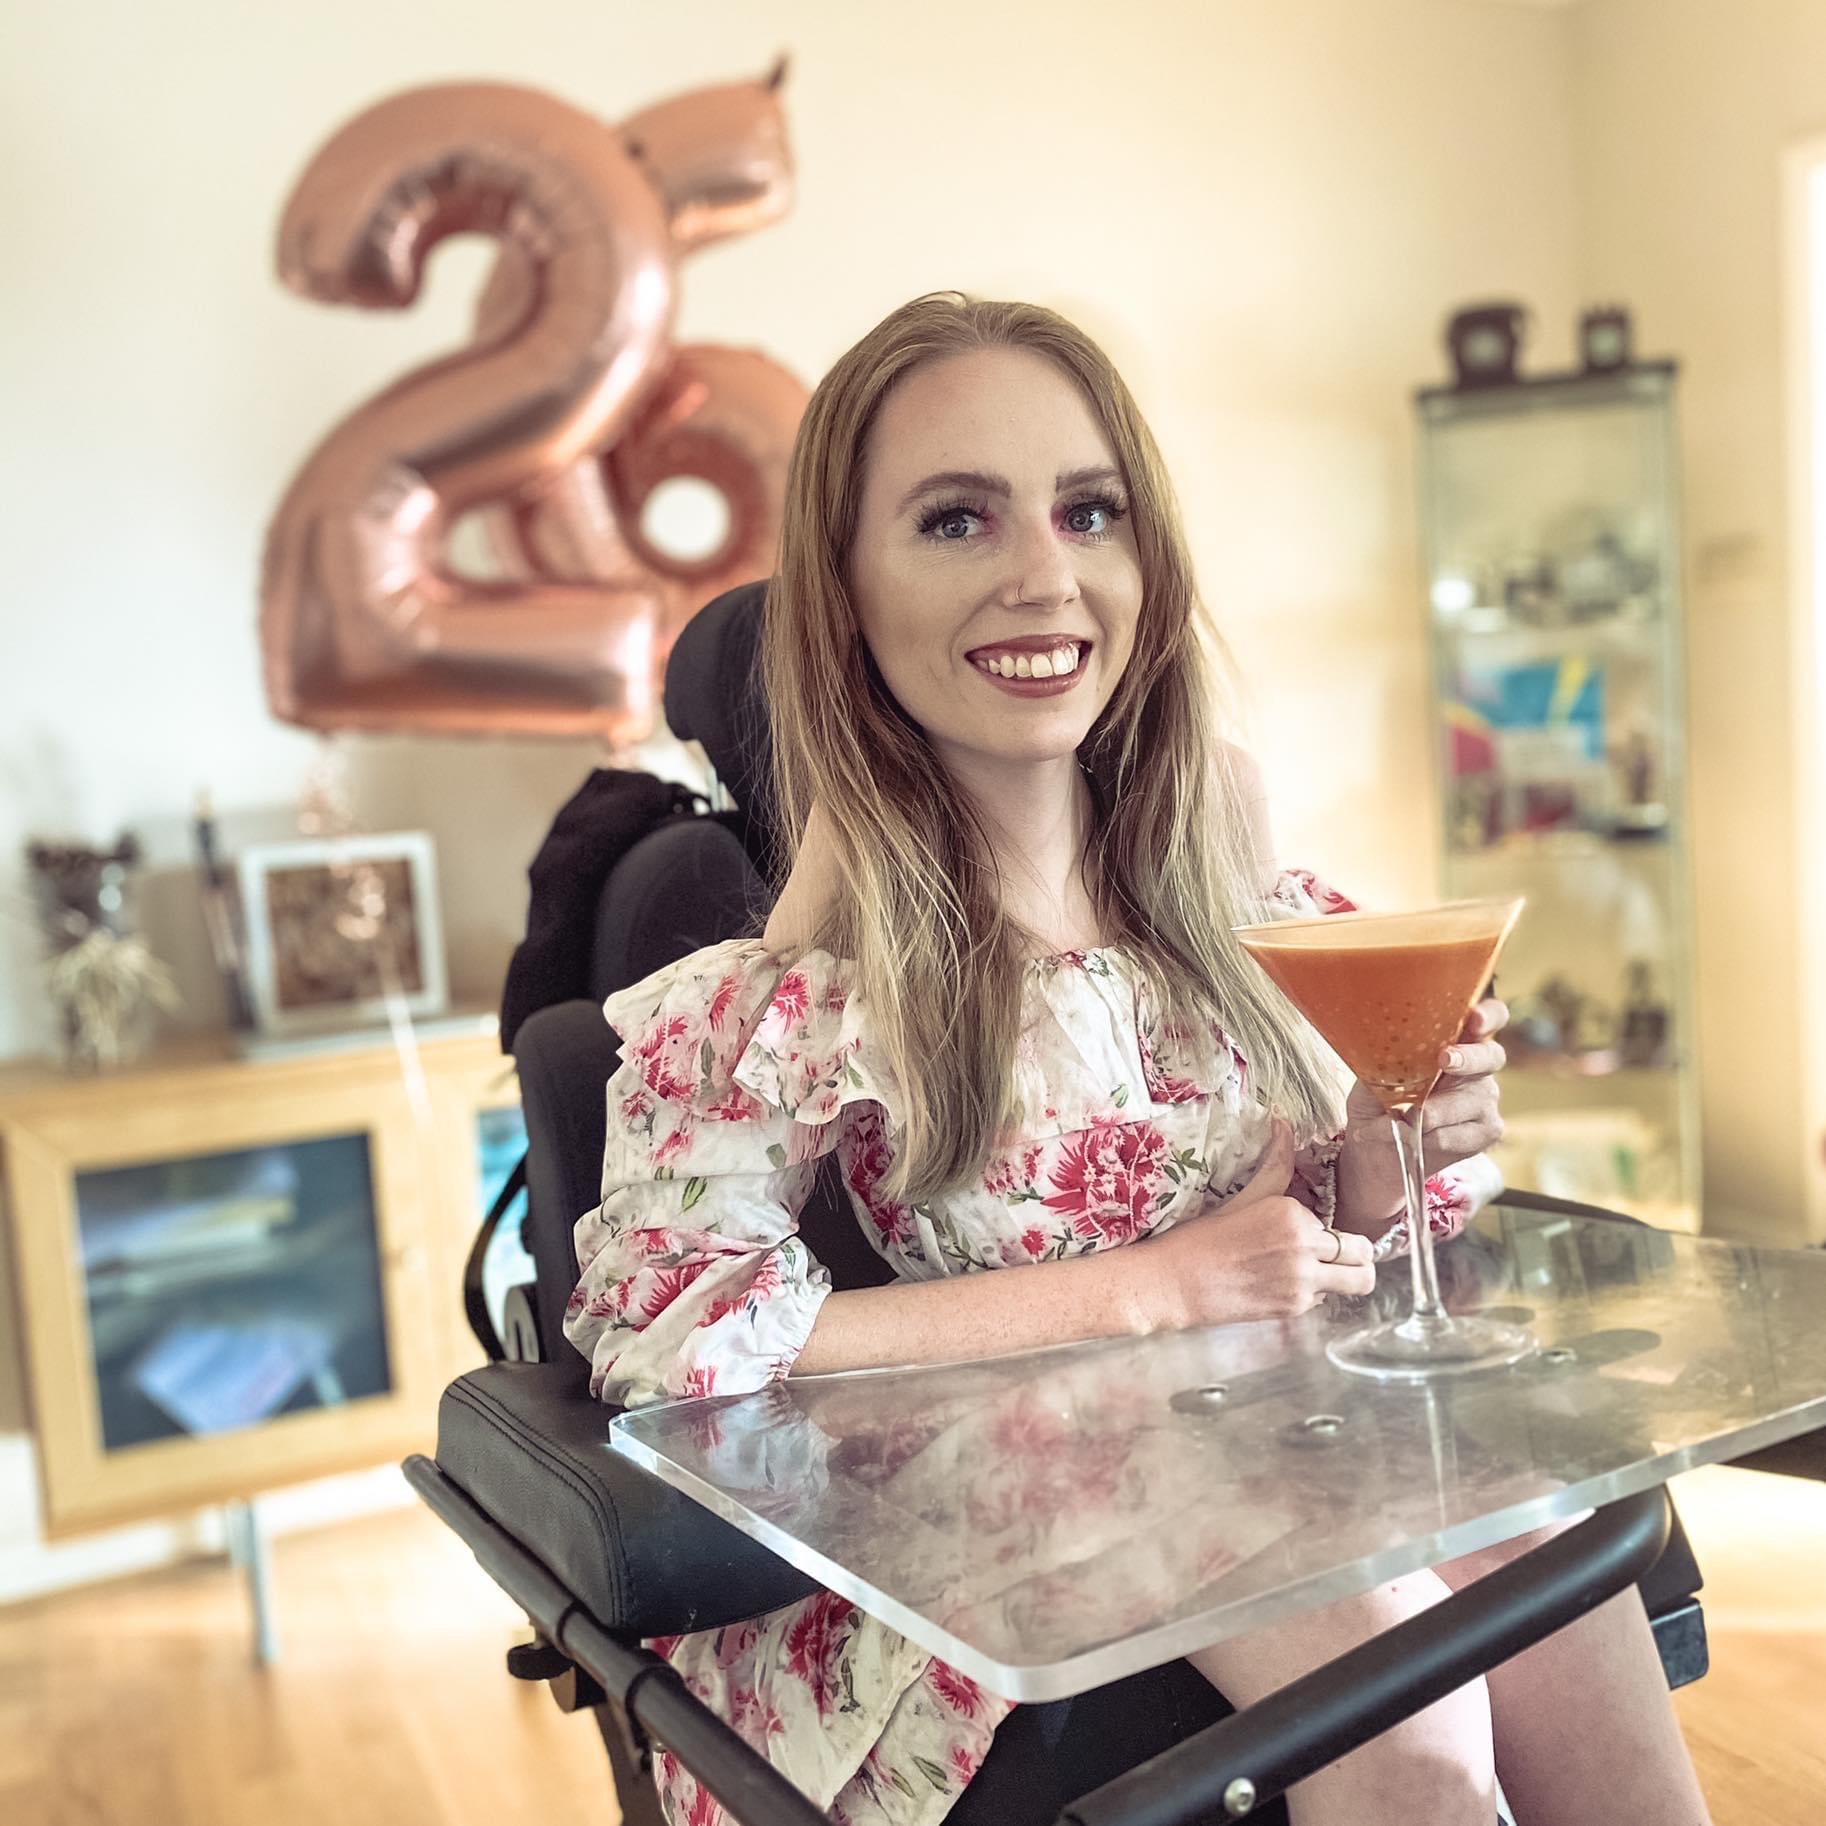 Young woman with light shoulder length hair sat in a powerchair wearing a white dress with pink flower print. Holding a martini glass filled with a red liquid on a clear tray. The background is a light living room with 26 shaped pink balloons.